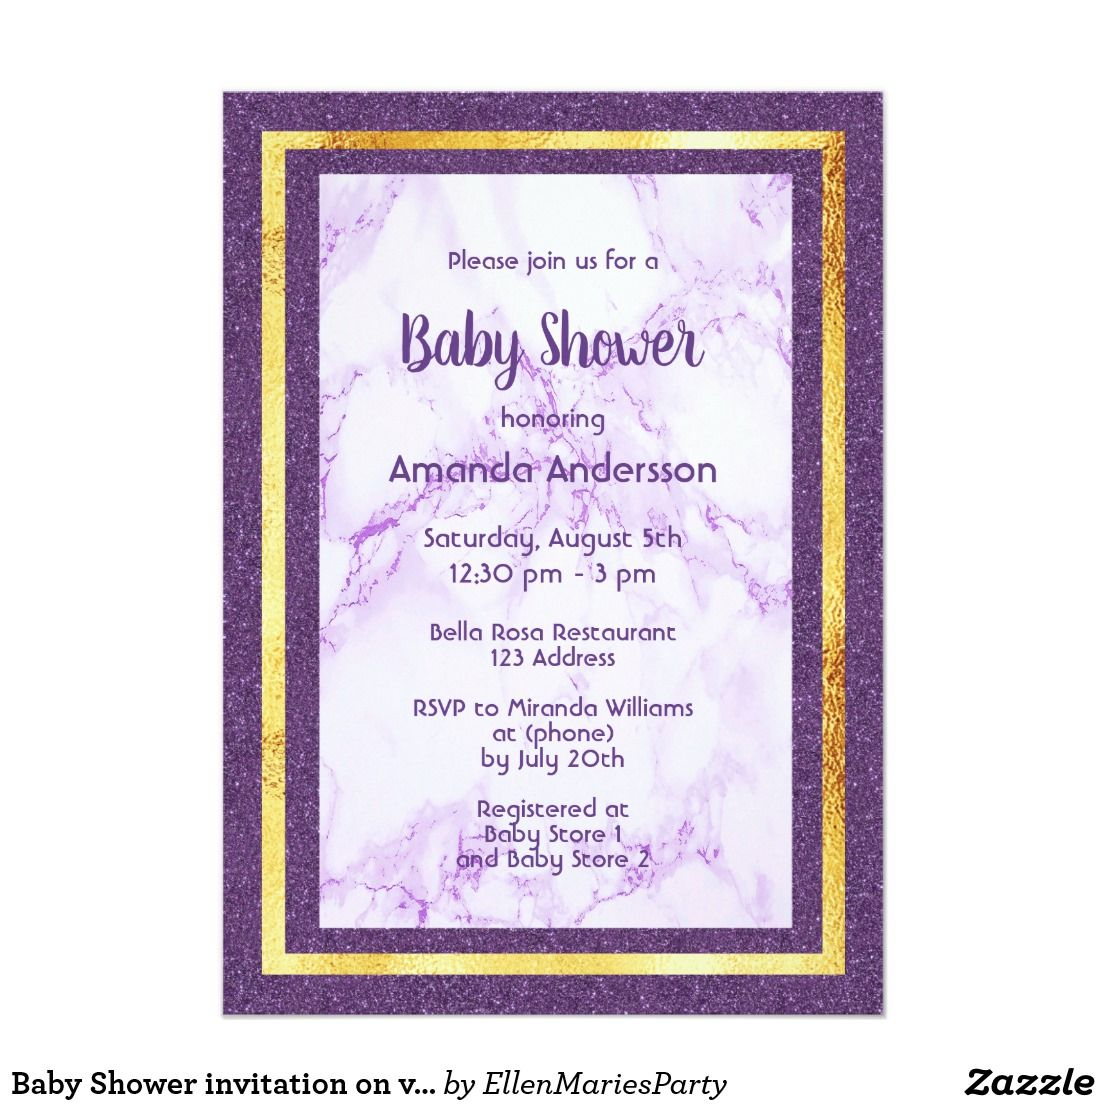 Baby Shower Invitation Letter Amusing Baby Shower Invitation On Violet Marble Glitter  Elegant .